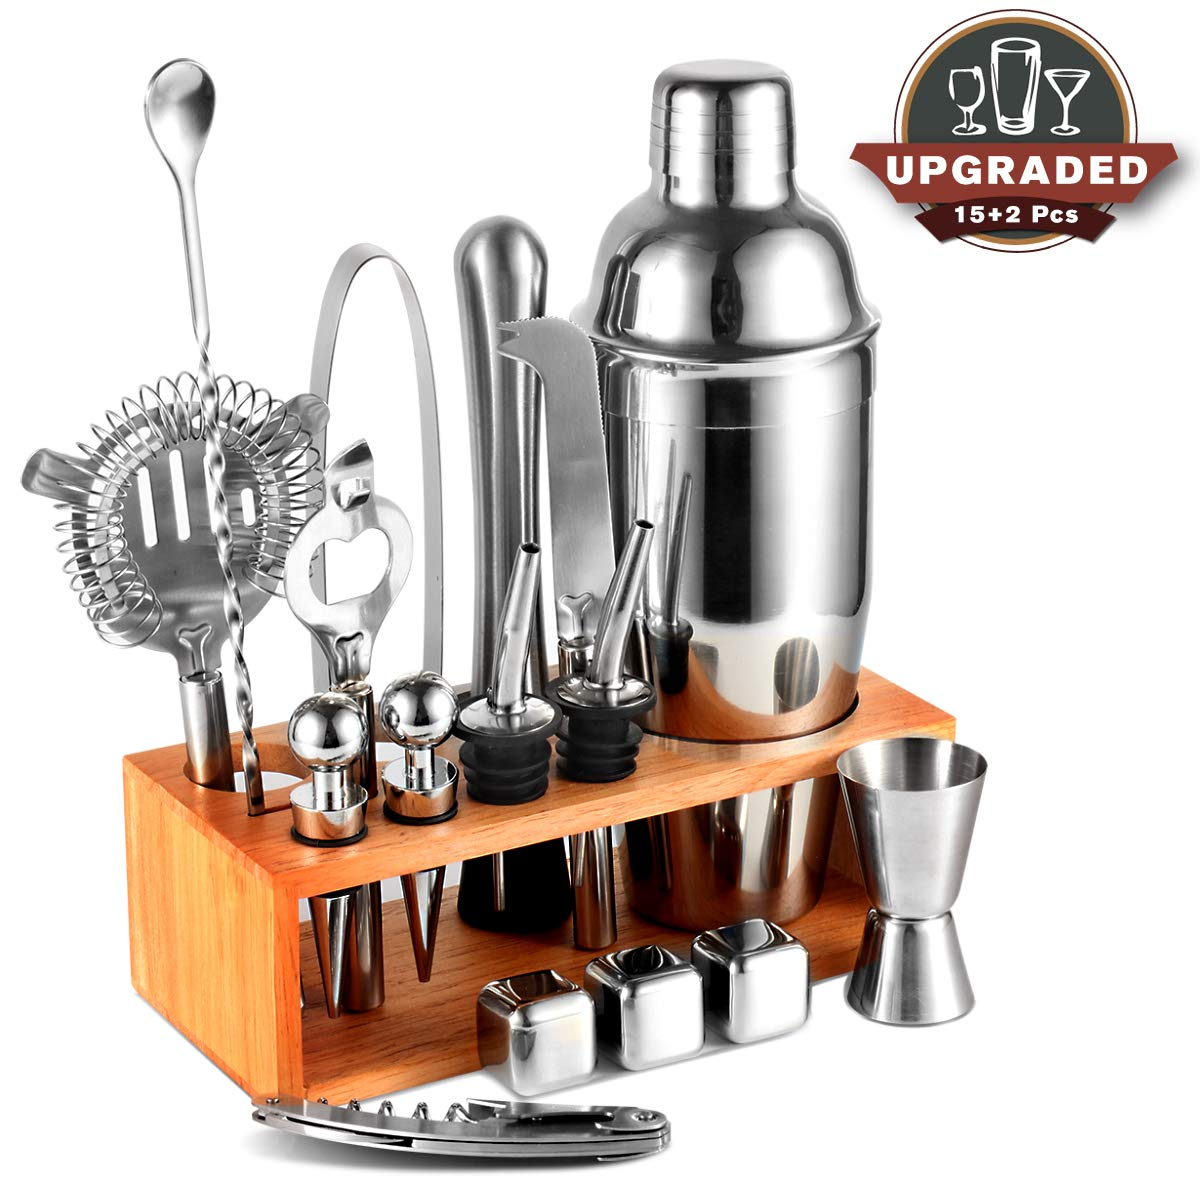 25oz Cocktail Shaker 17pc Bartender Kit with Stand,Professional Stainless Steel Bar Tool Set Bartending Kit Perfect for Drink Mixing Experience by Segauin